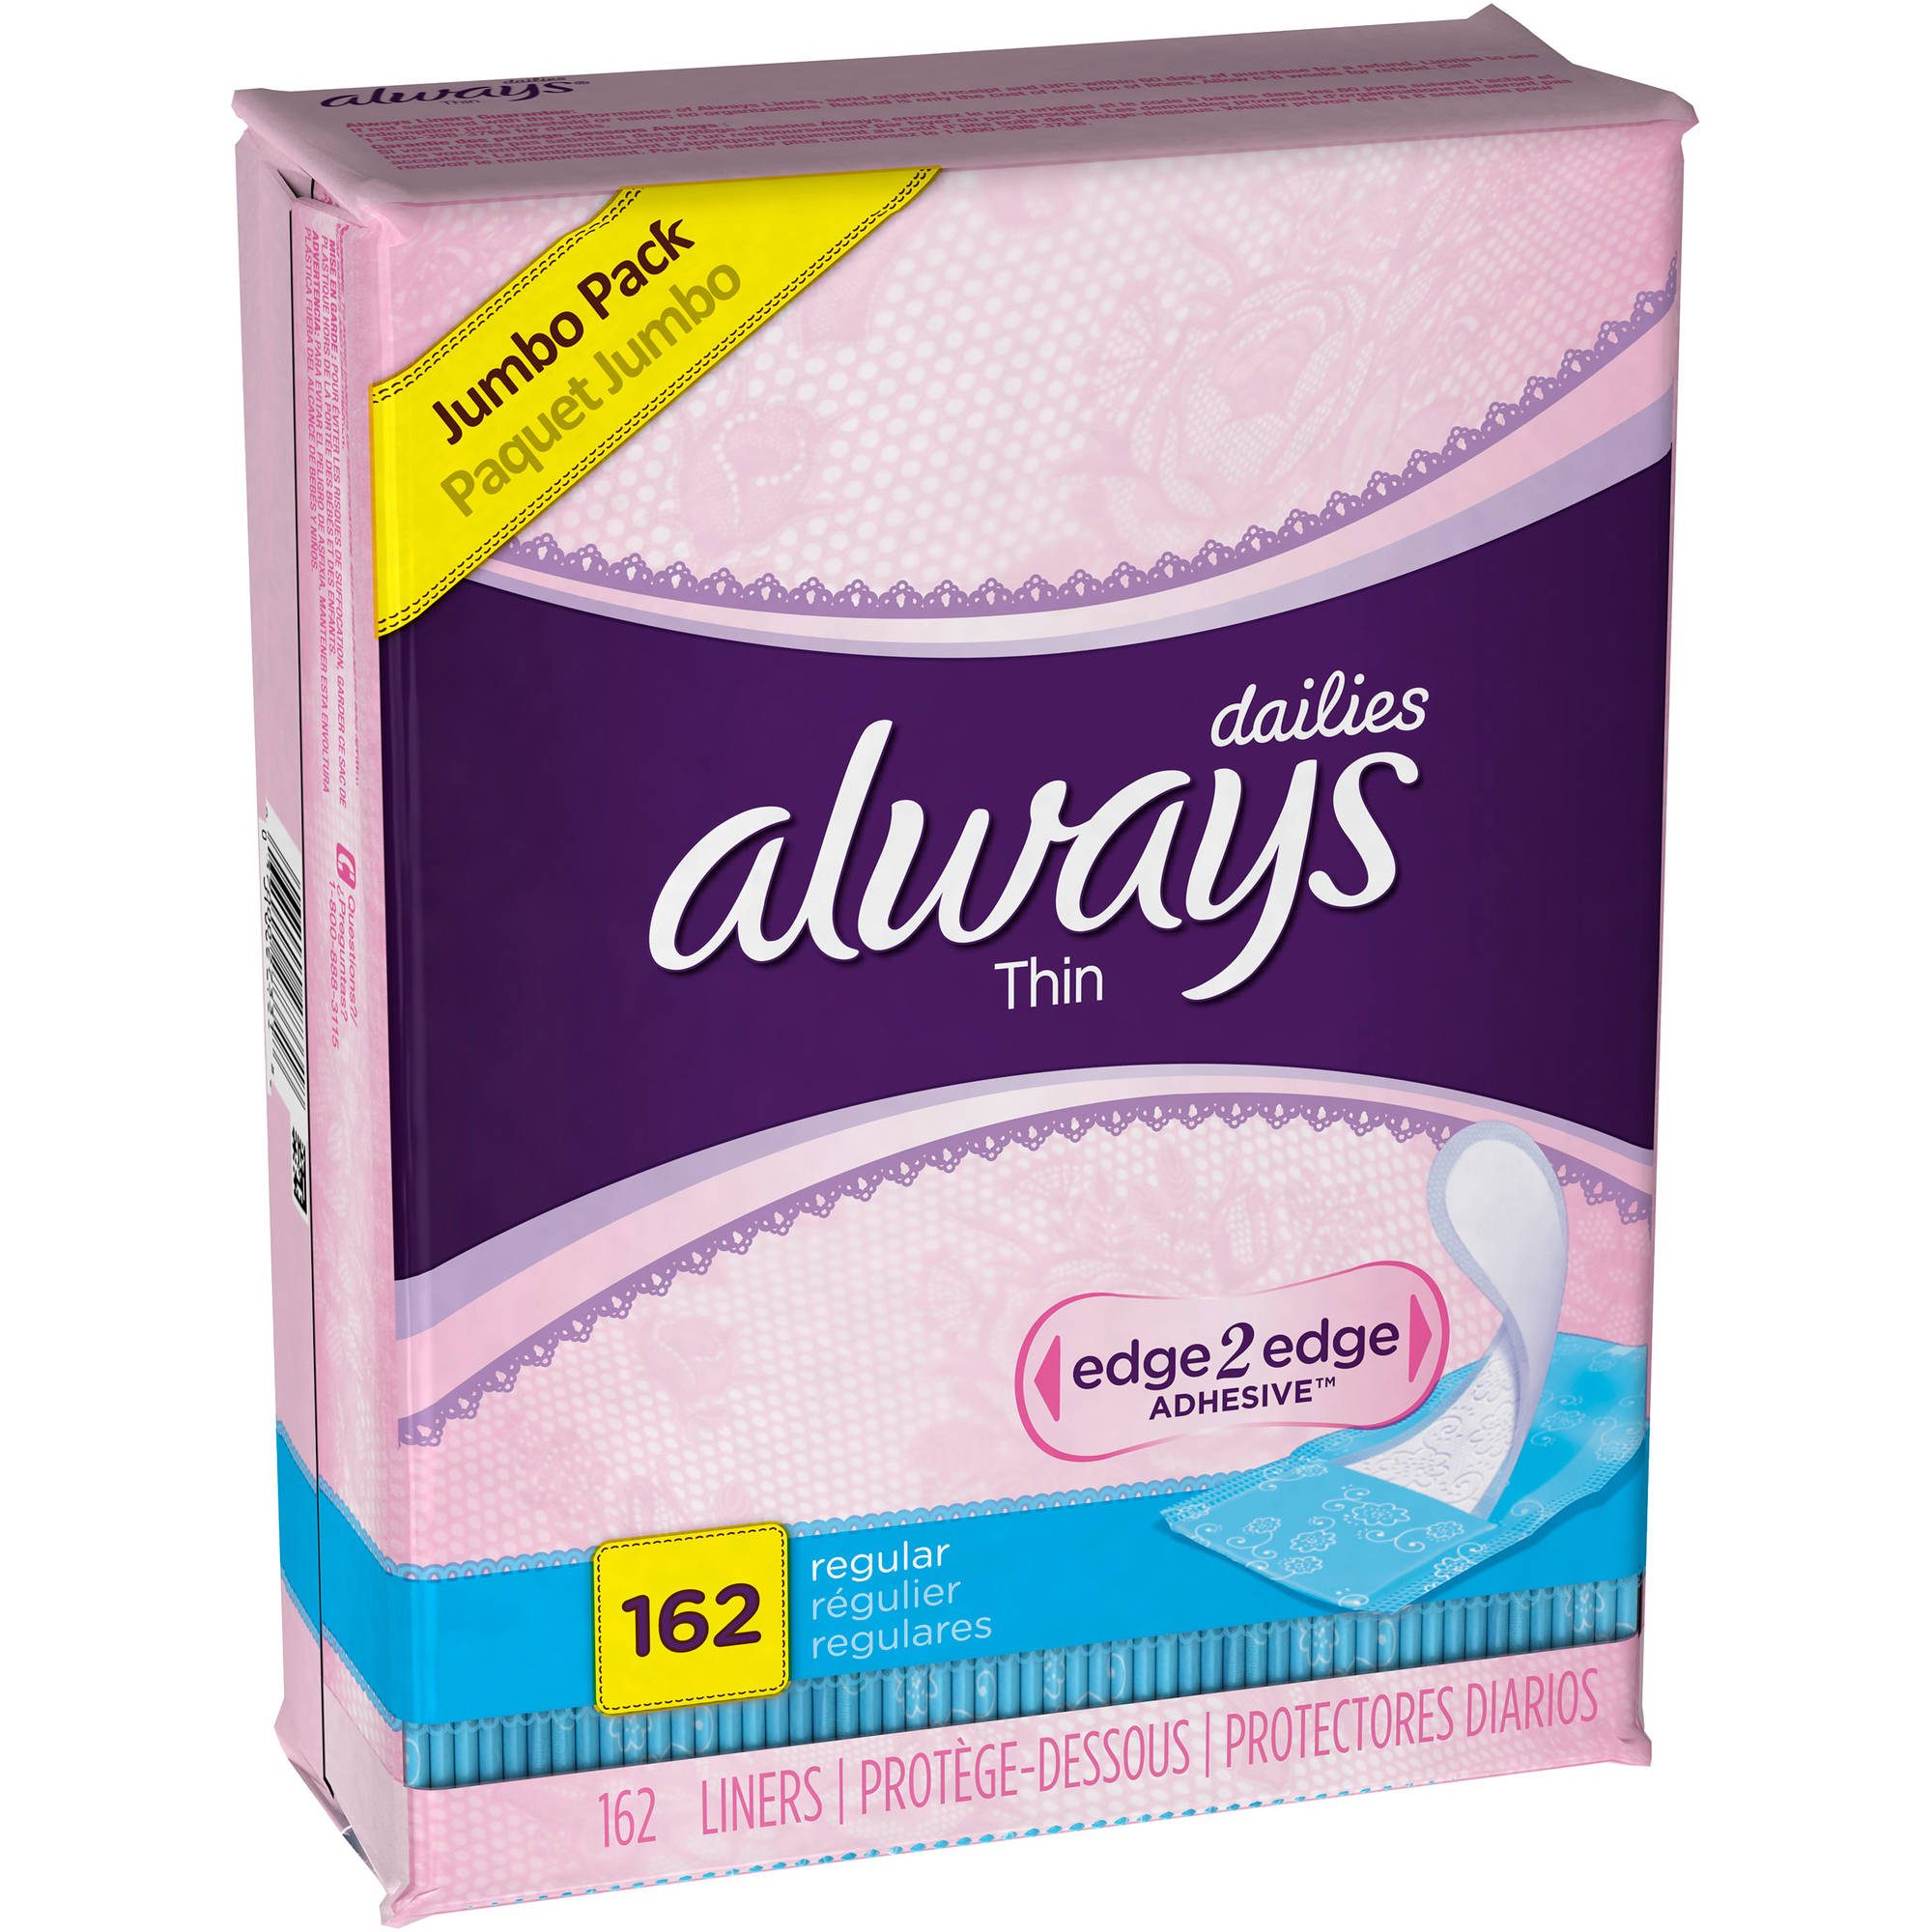 Always Thin Dailies Regular Liners, 162 count